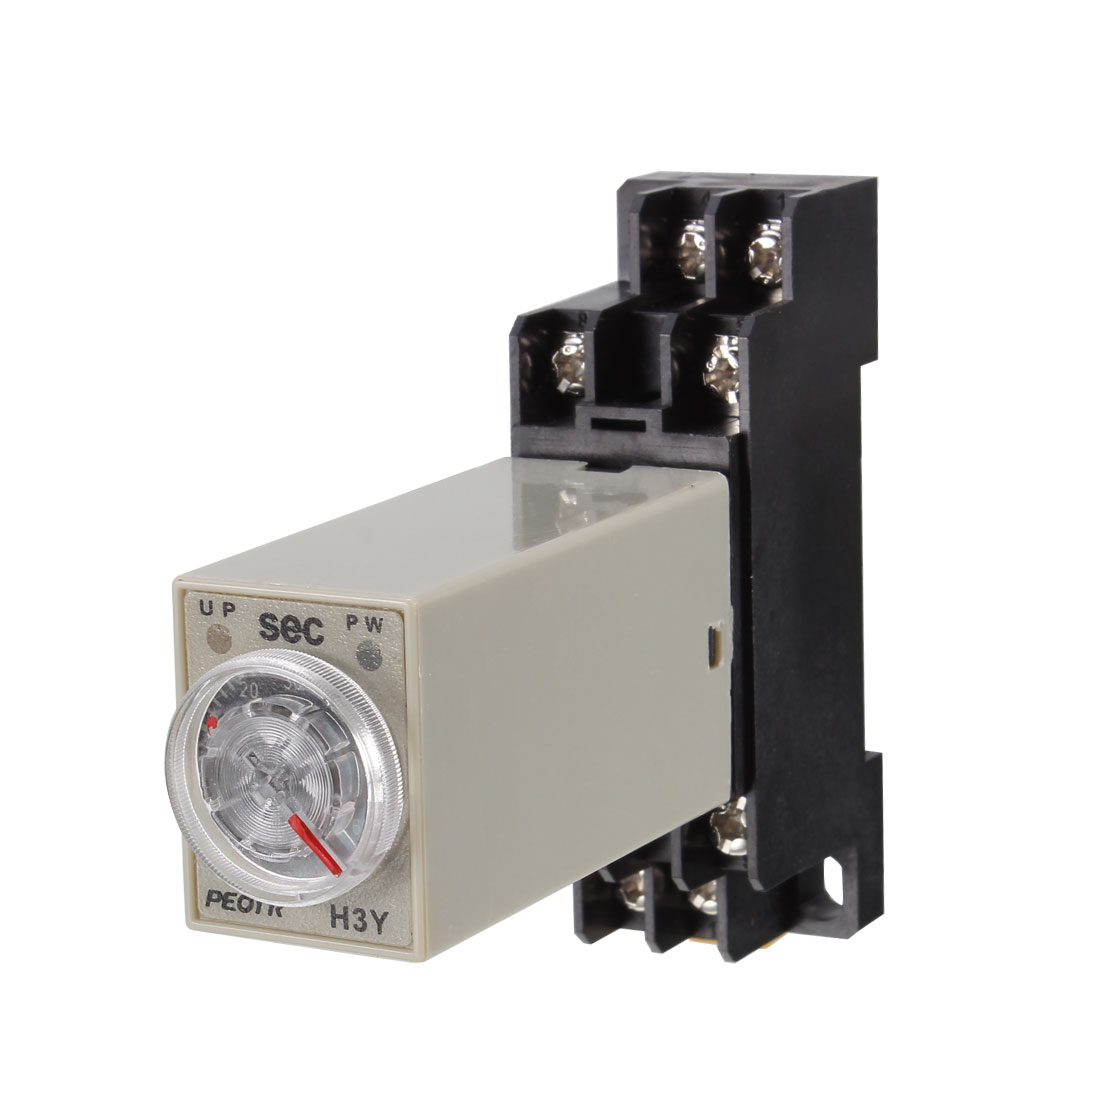 H3Y-2 24VDC DPDT 60 Seconds 8P Terminals Delay Timer Time Relay w Base